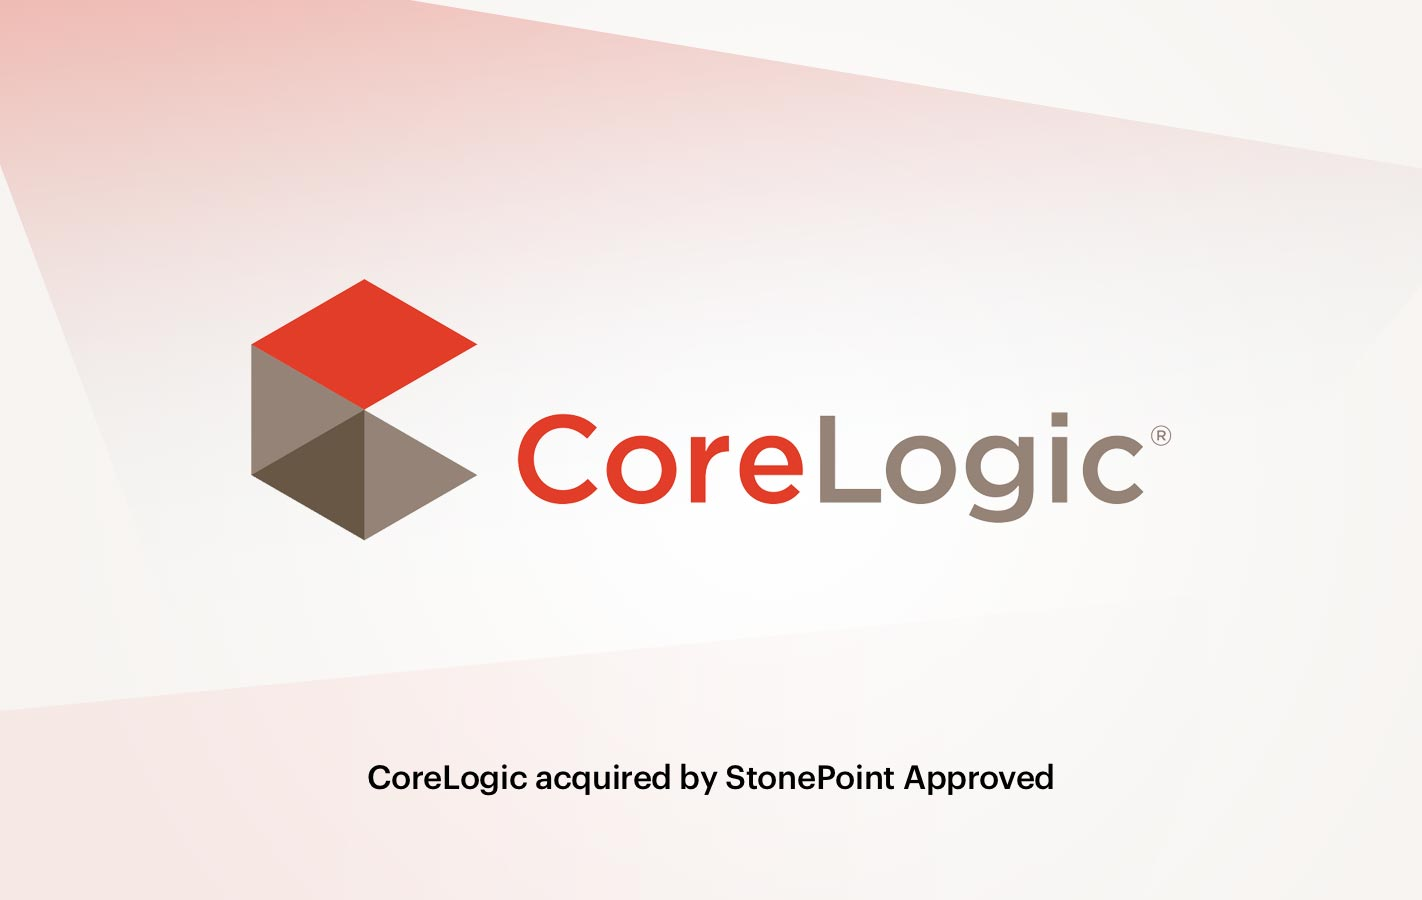 CoreLogic acquired by StonePoint Approved